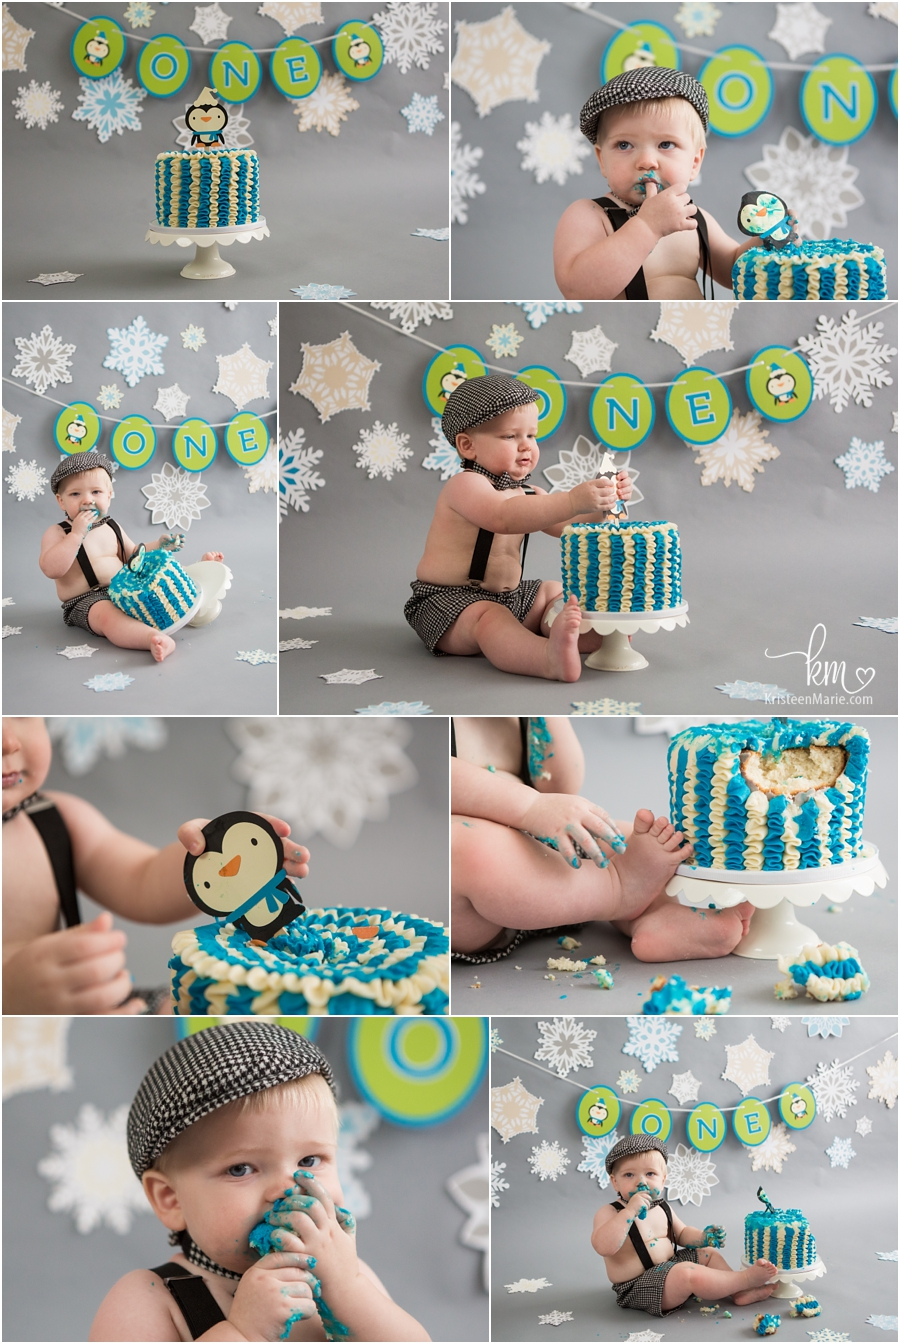 Winter ONEderland cake smash pictures for baby's first birthday